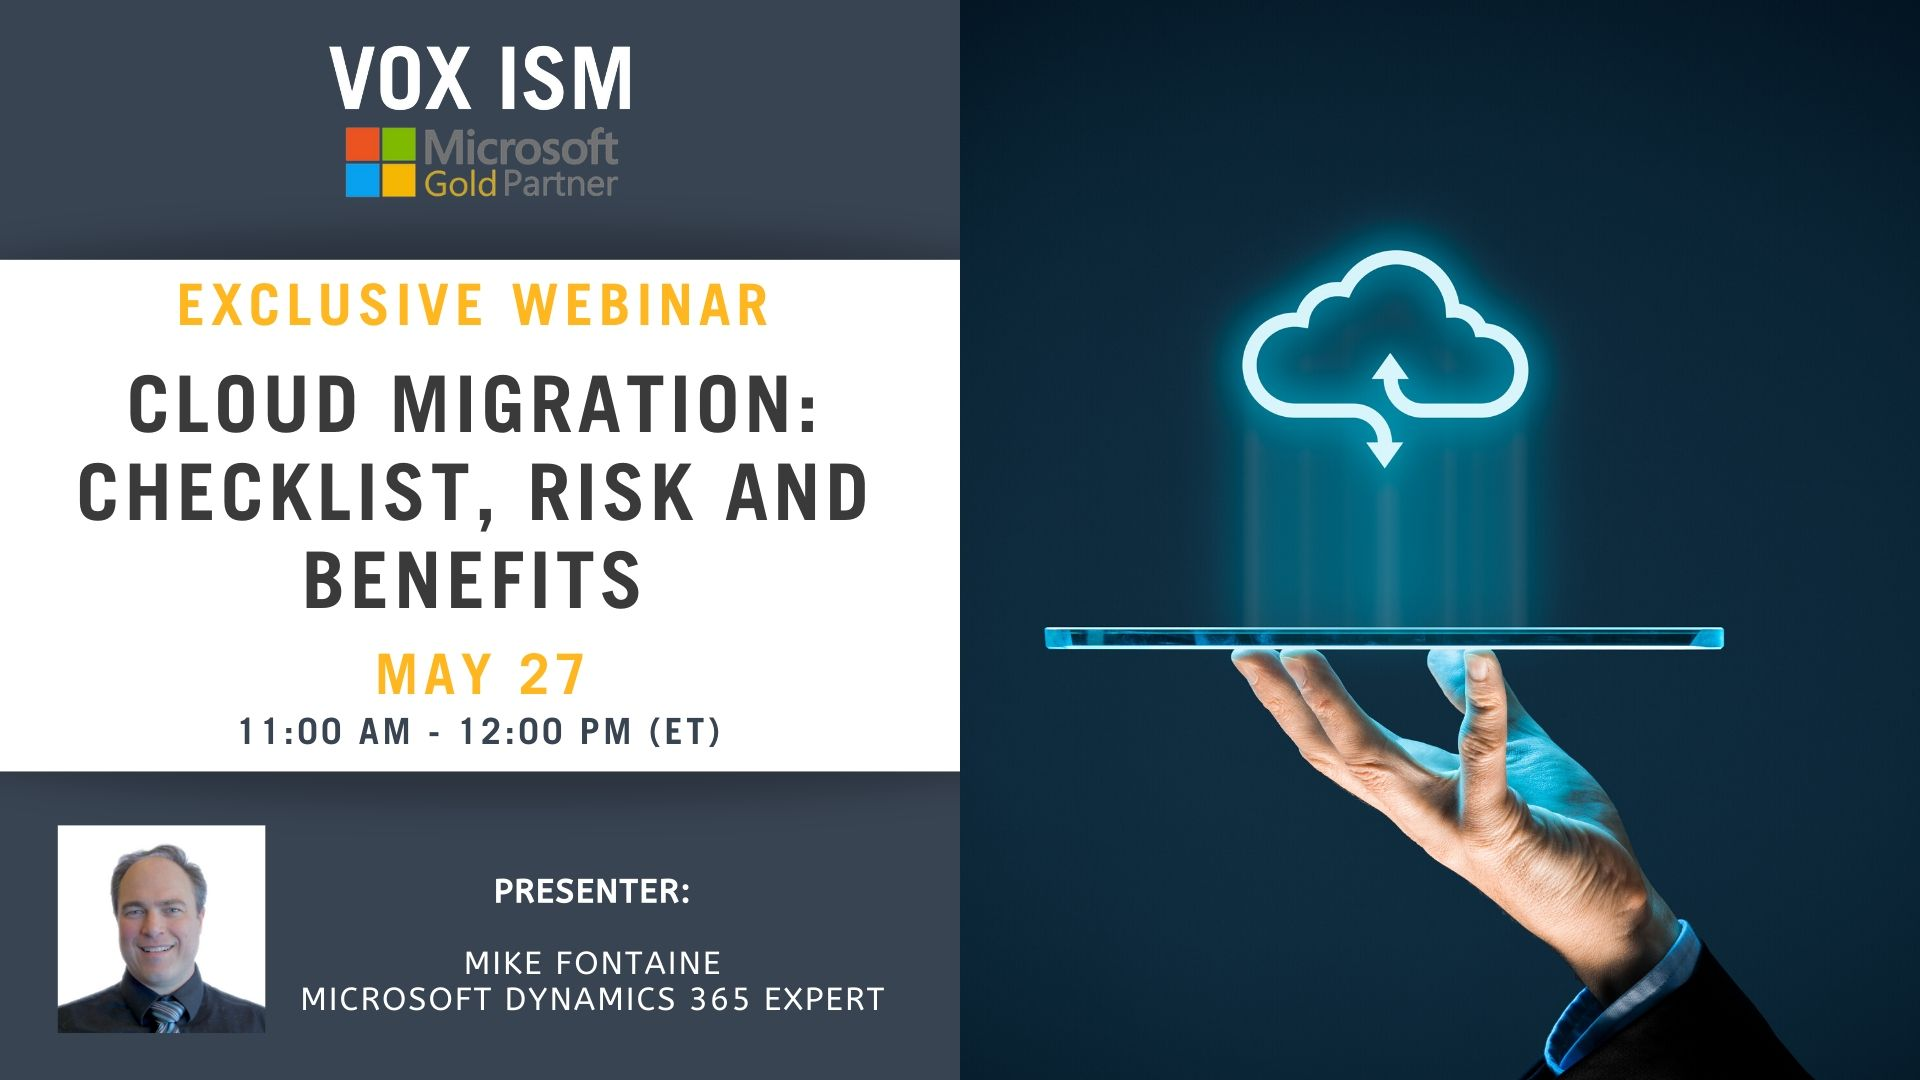 Cloud Migration: Checklist, Risk and Benefits - May 27 - Webinar VOX ISM